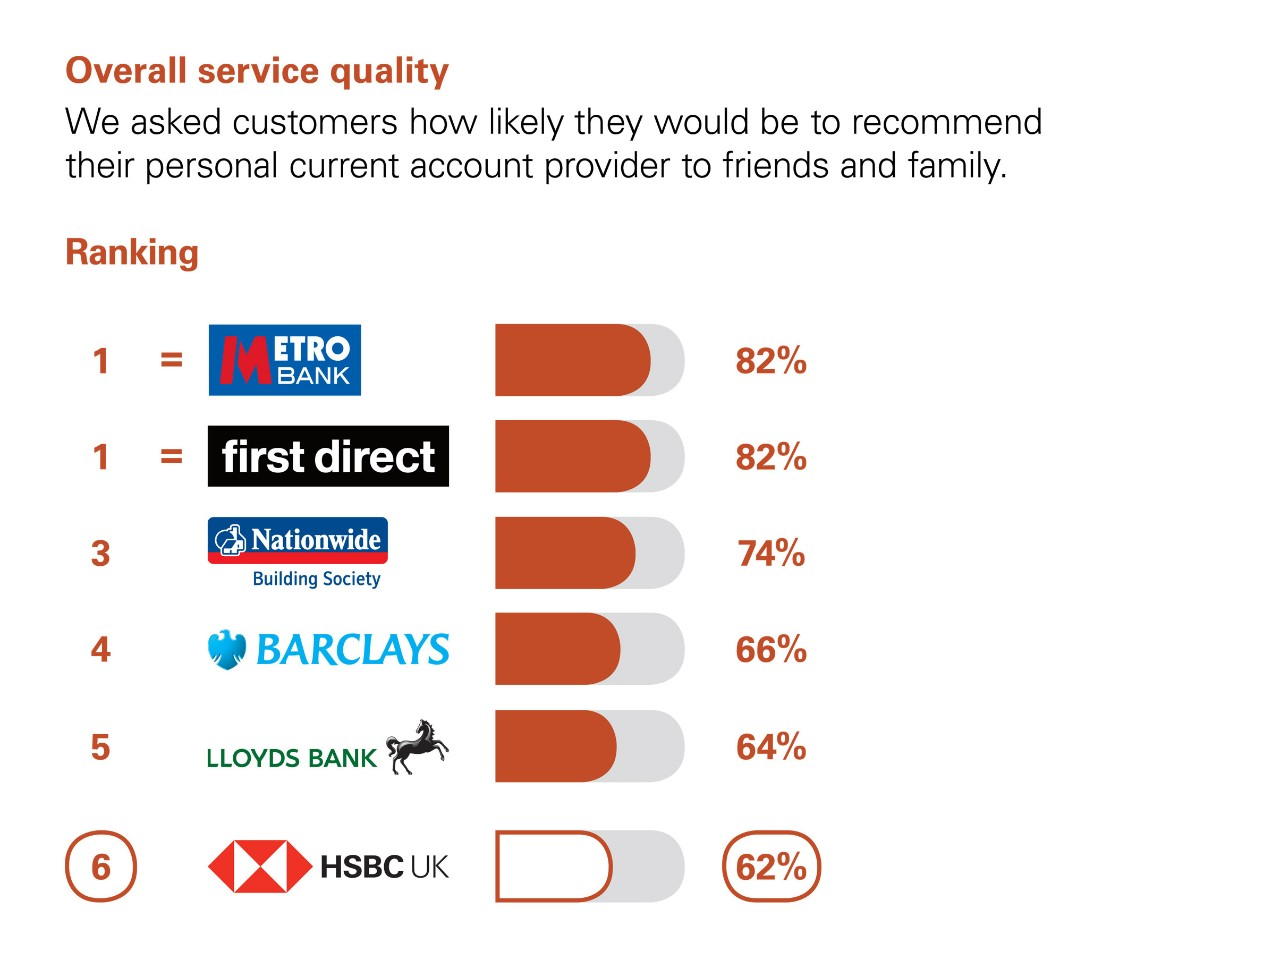 Welcome to HSBC UK banking products including current